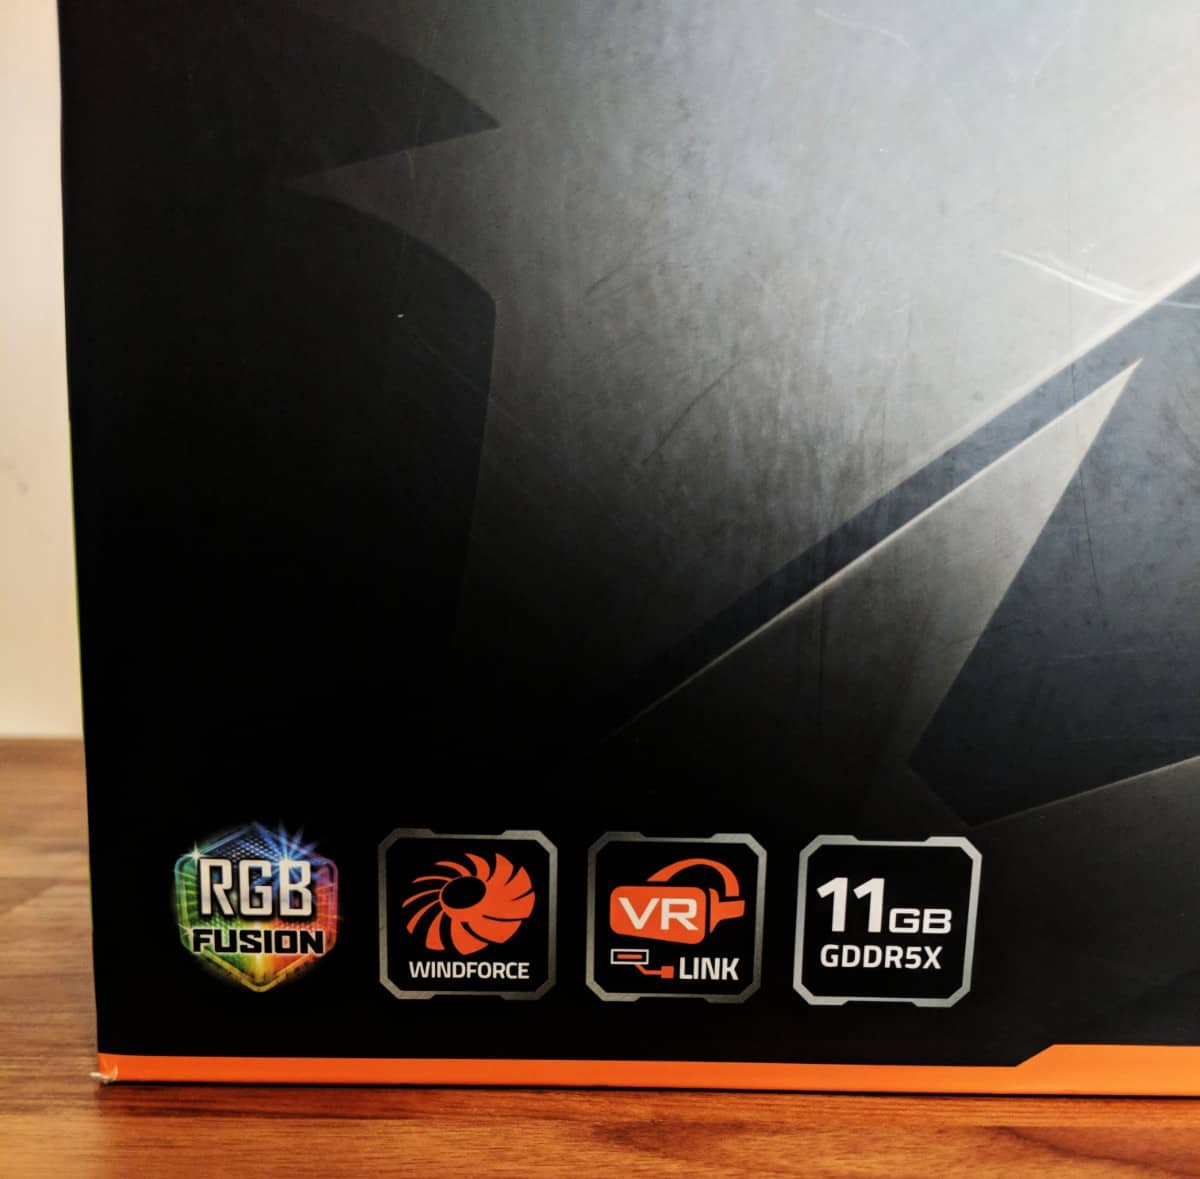 gtx1080ti-Photos-27 Gigabyte AORUS GTX 1080 Ti Review